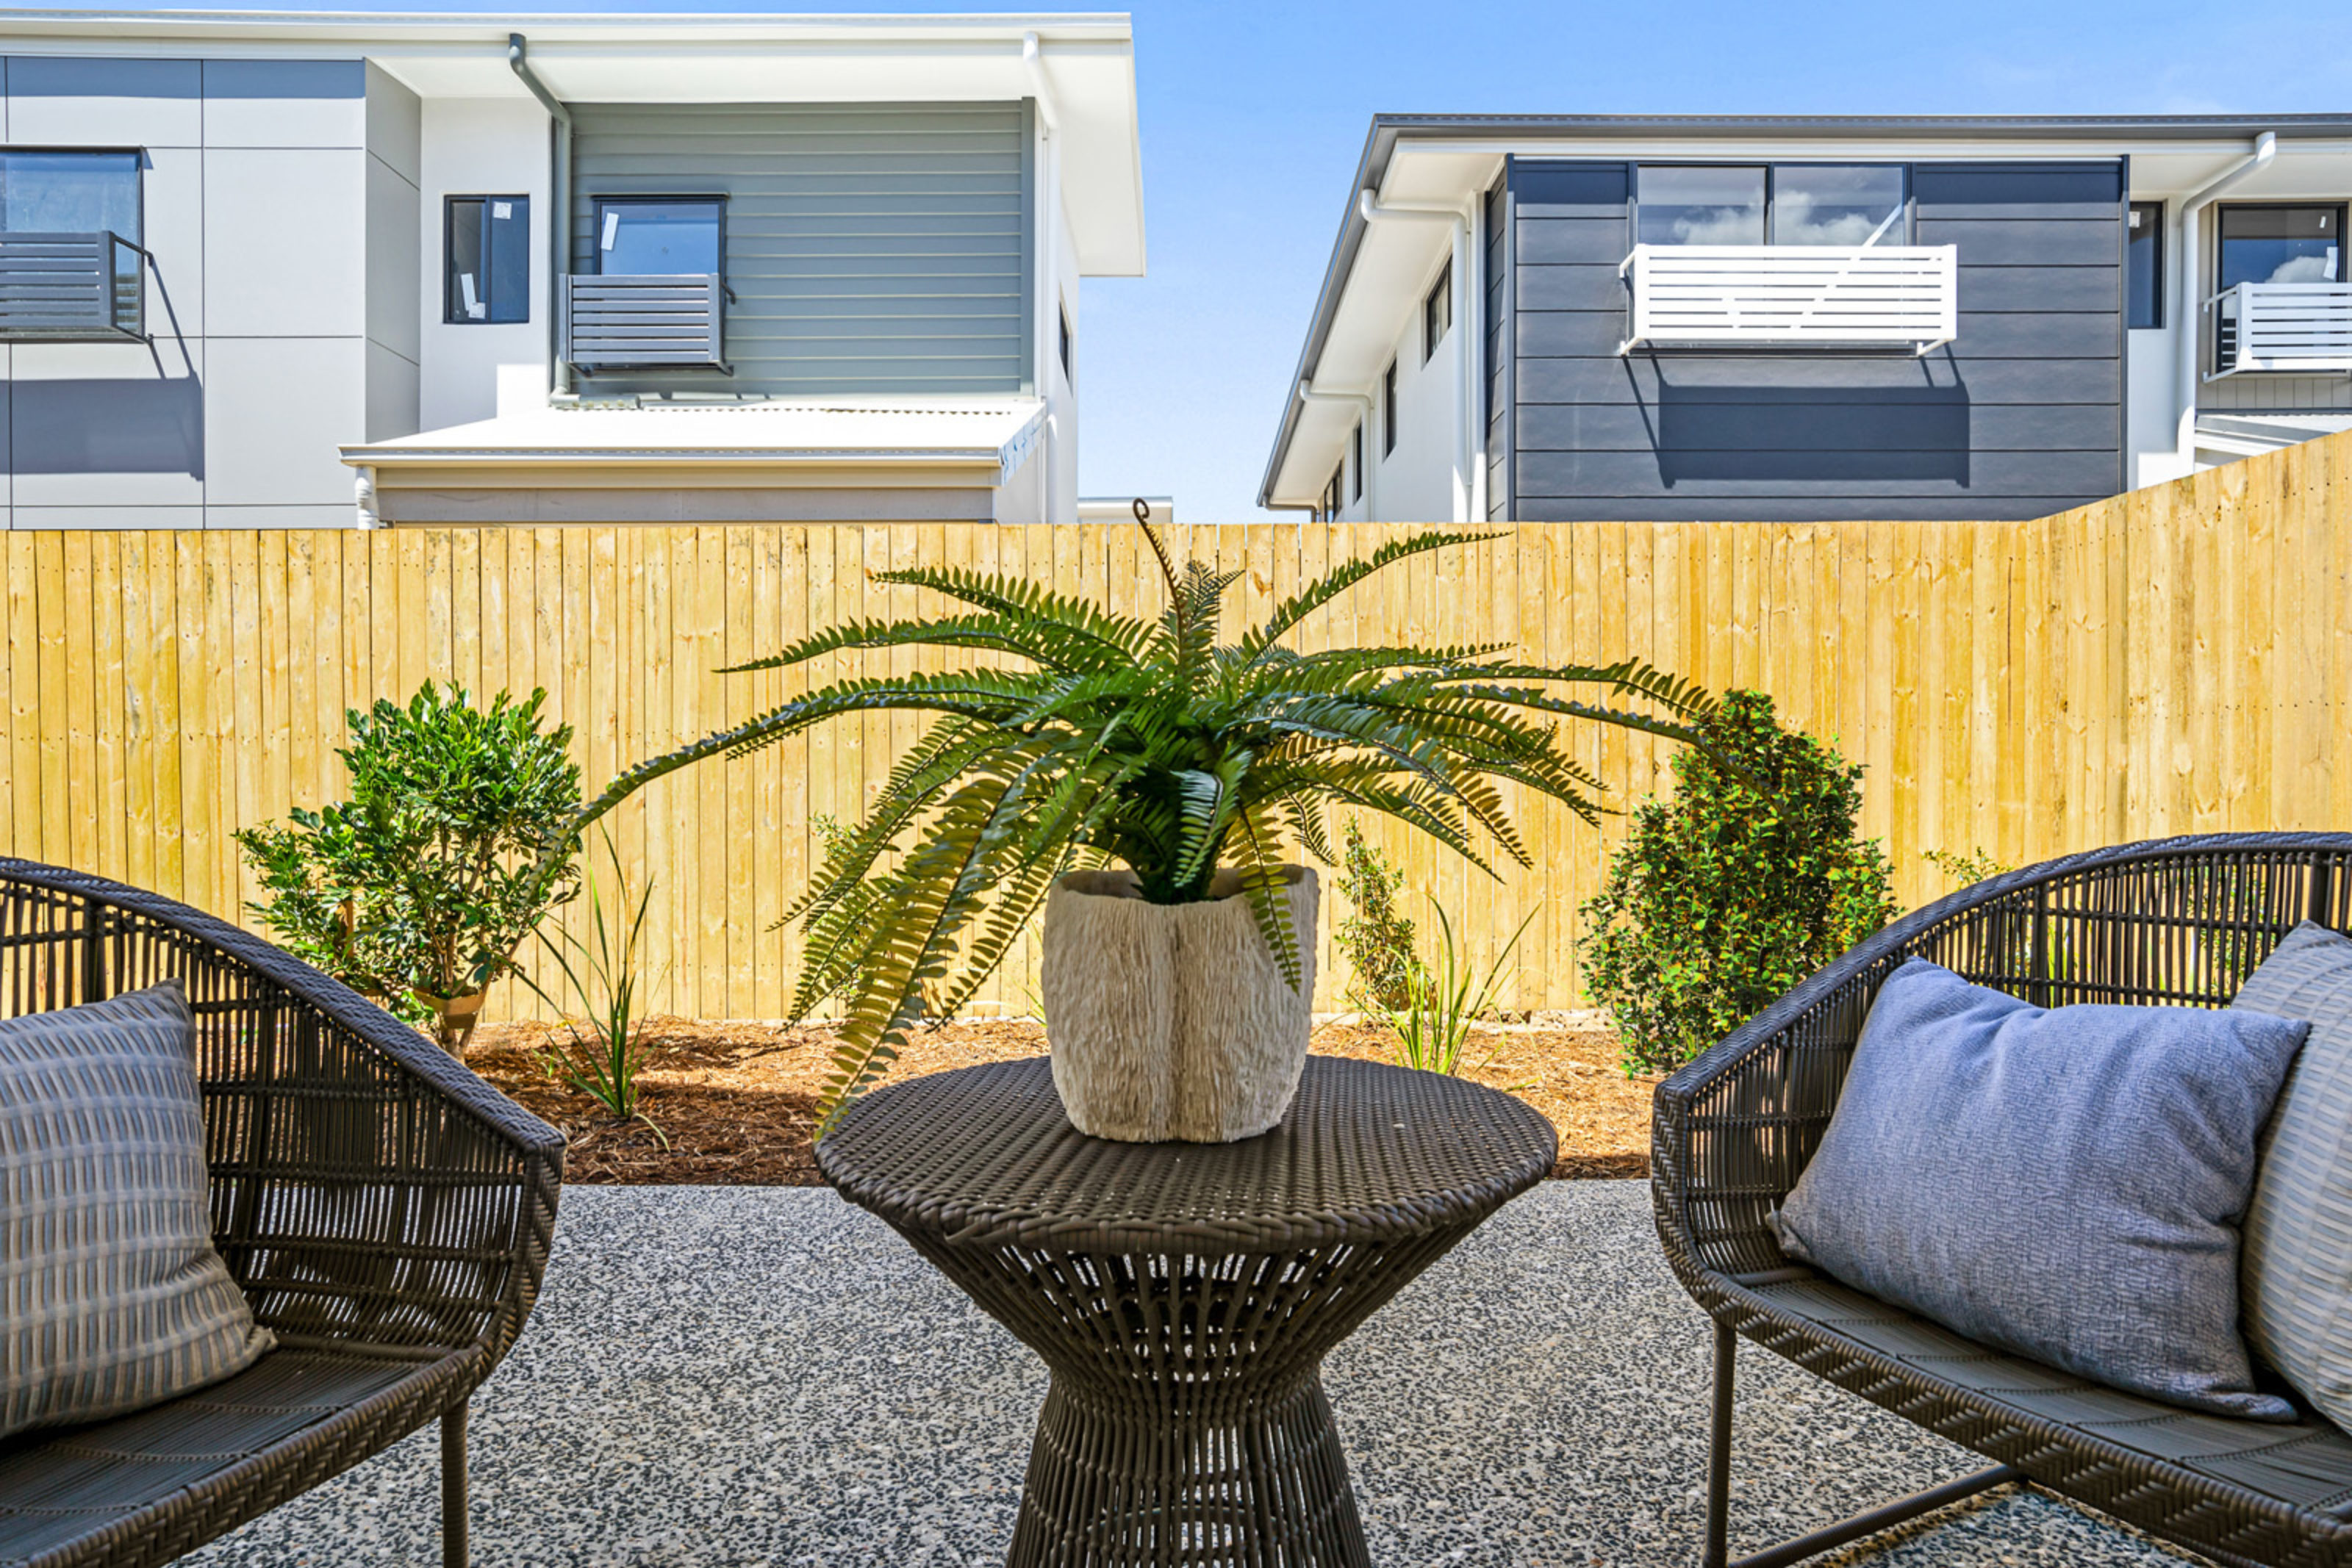 Ausbuild Townhouse Courtyard